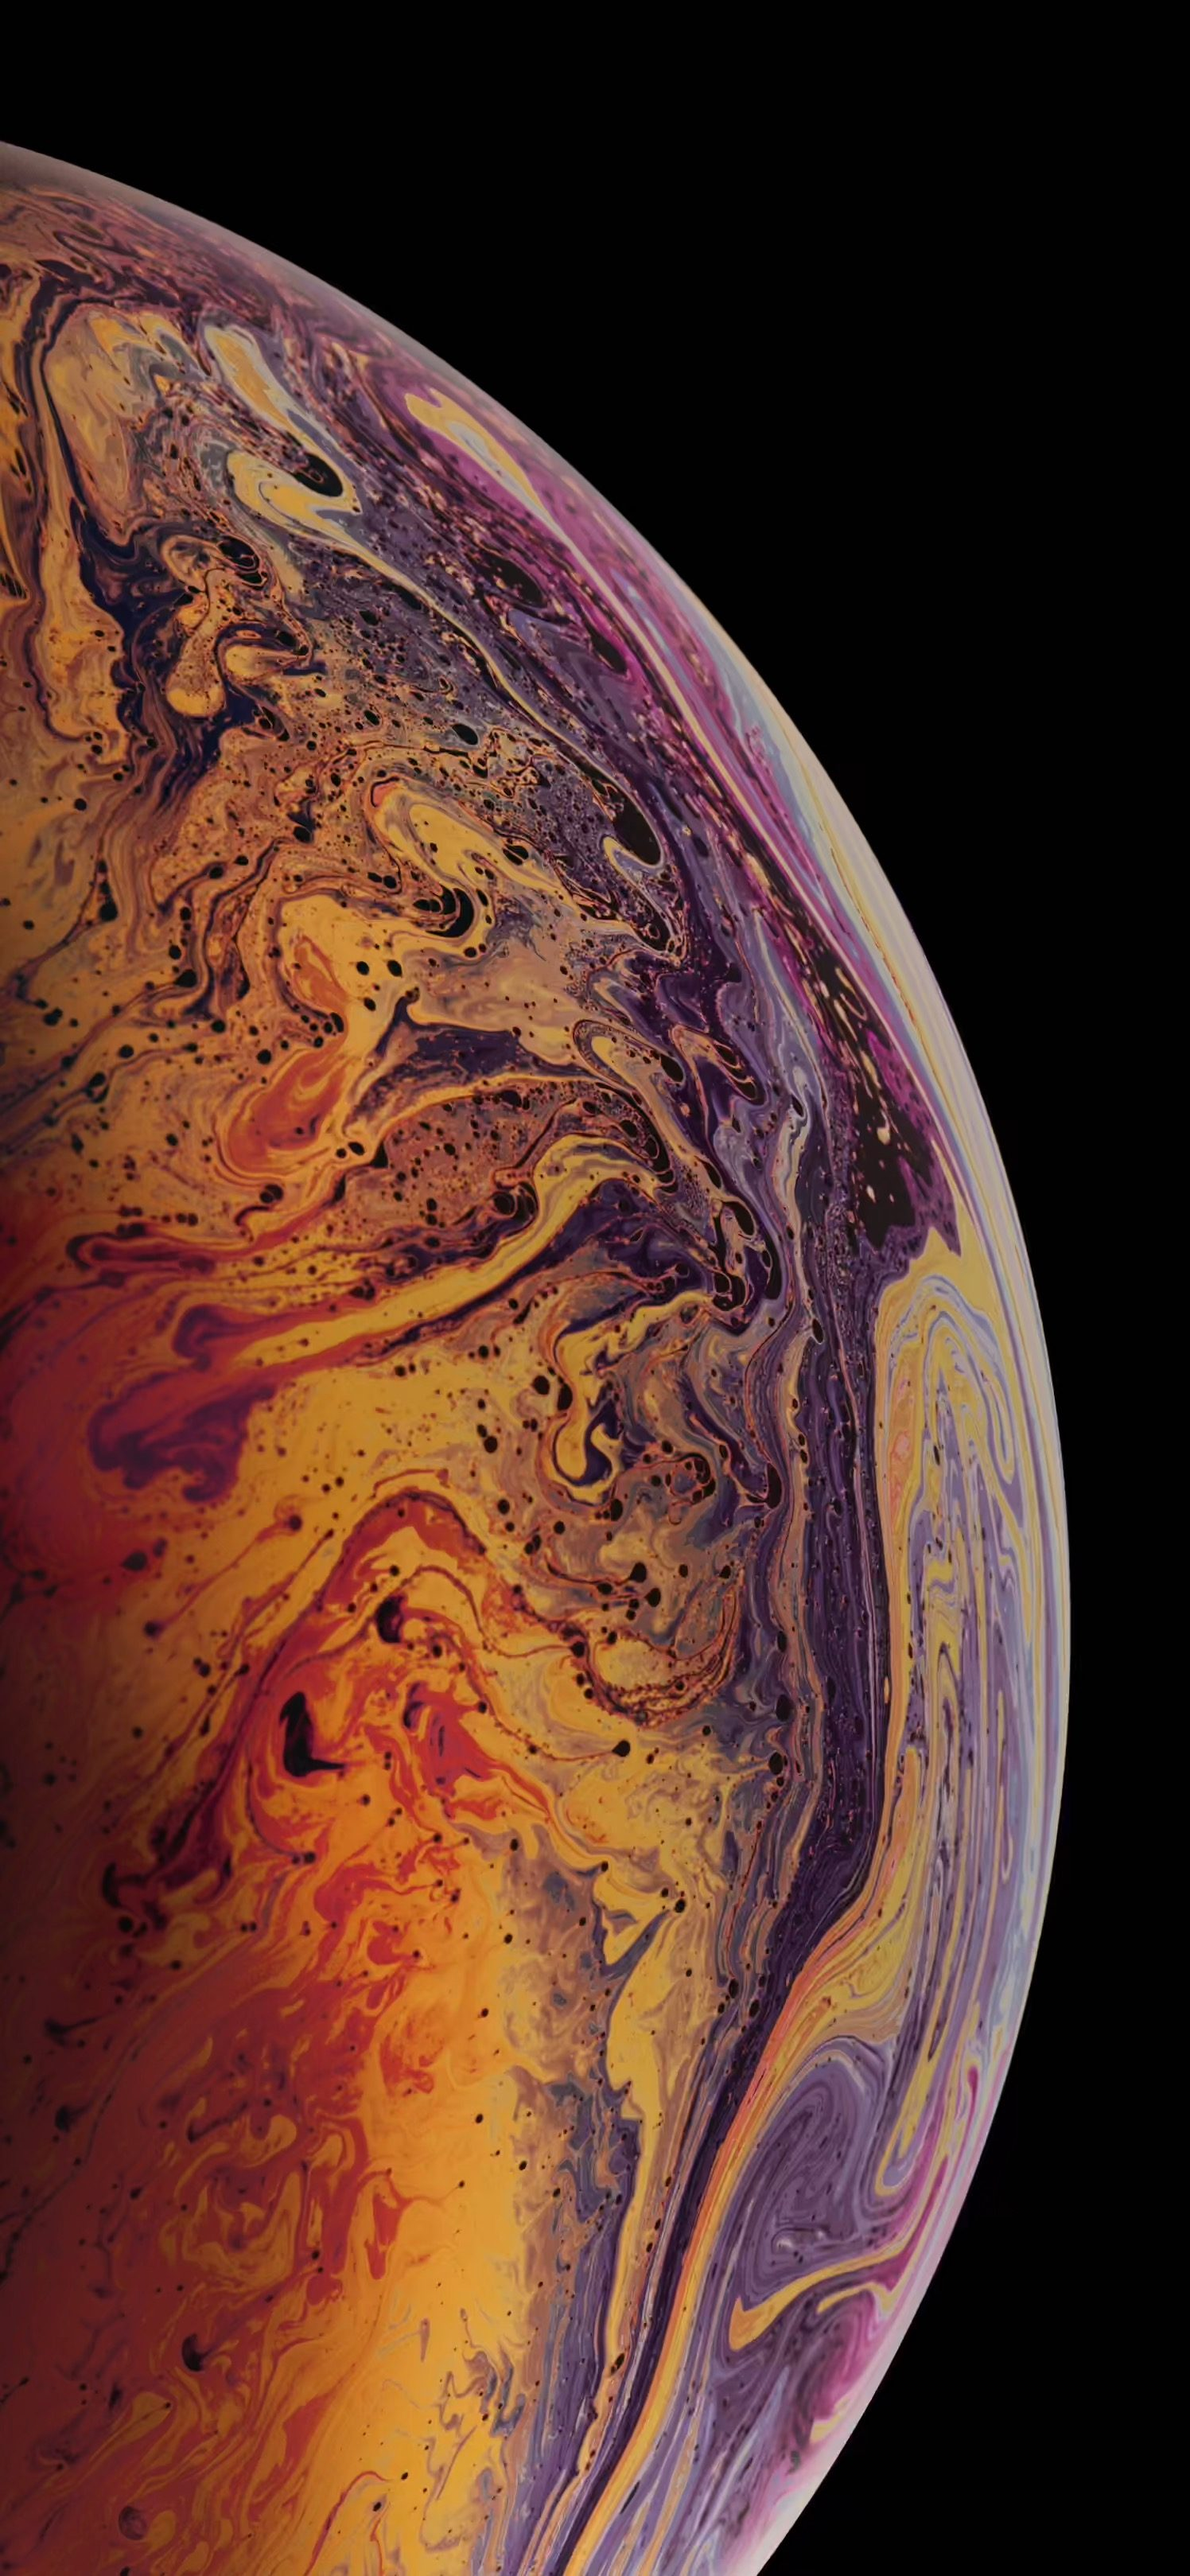 Download the new iPhone Xs and iPhone Xs Max wallpapers right here 1496x3238